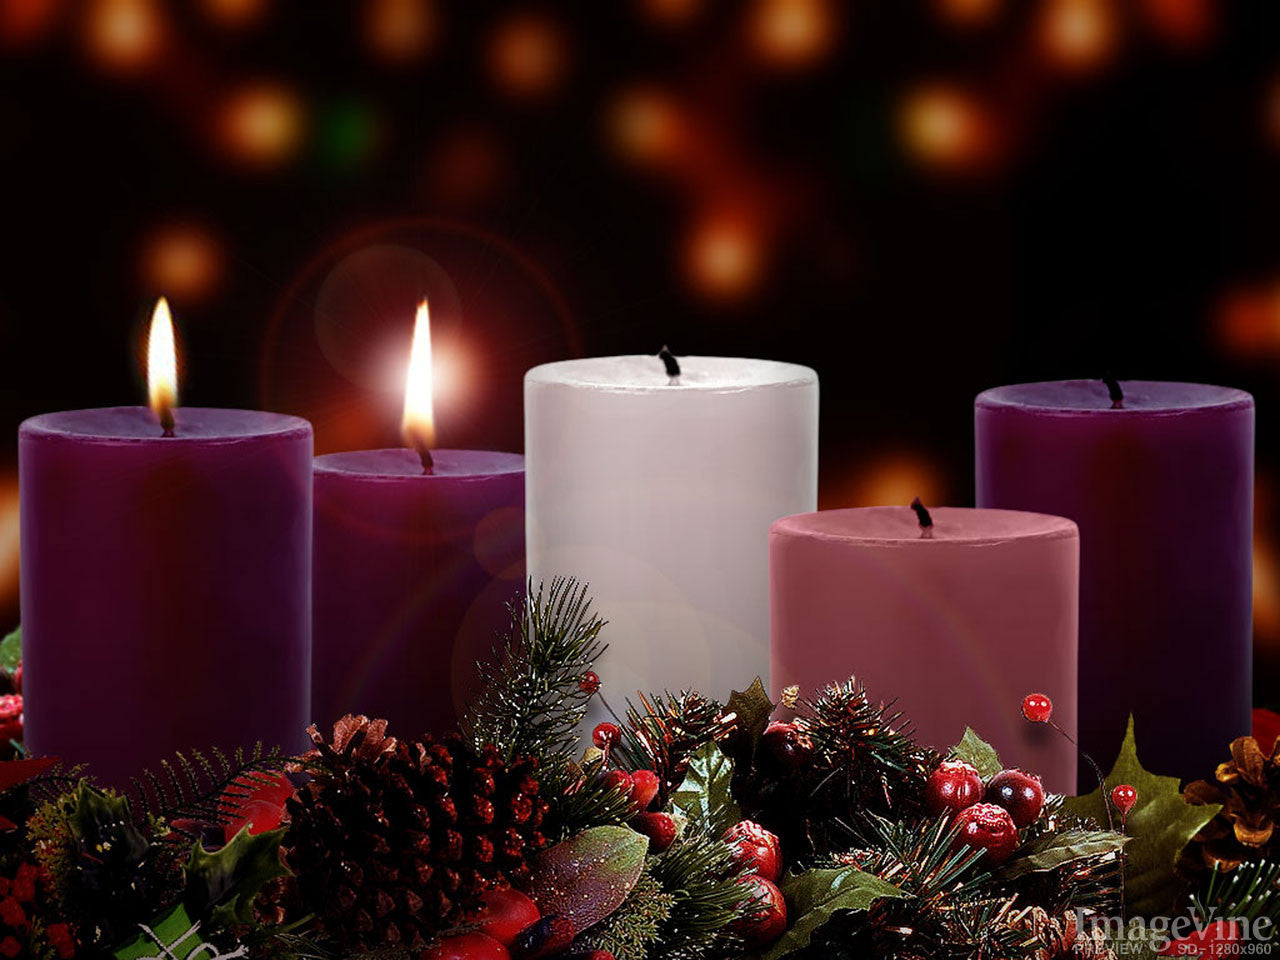 Image result for image of advent wreath two candle lit